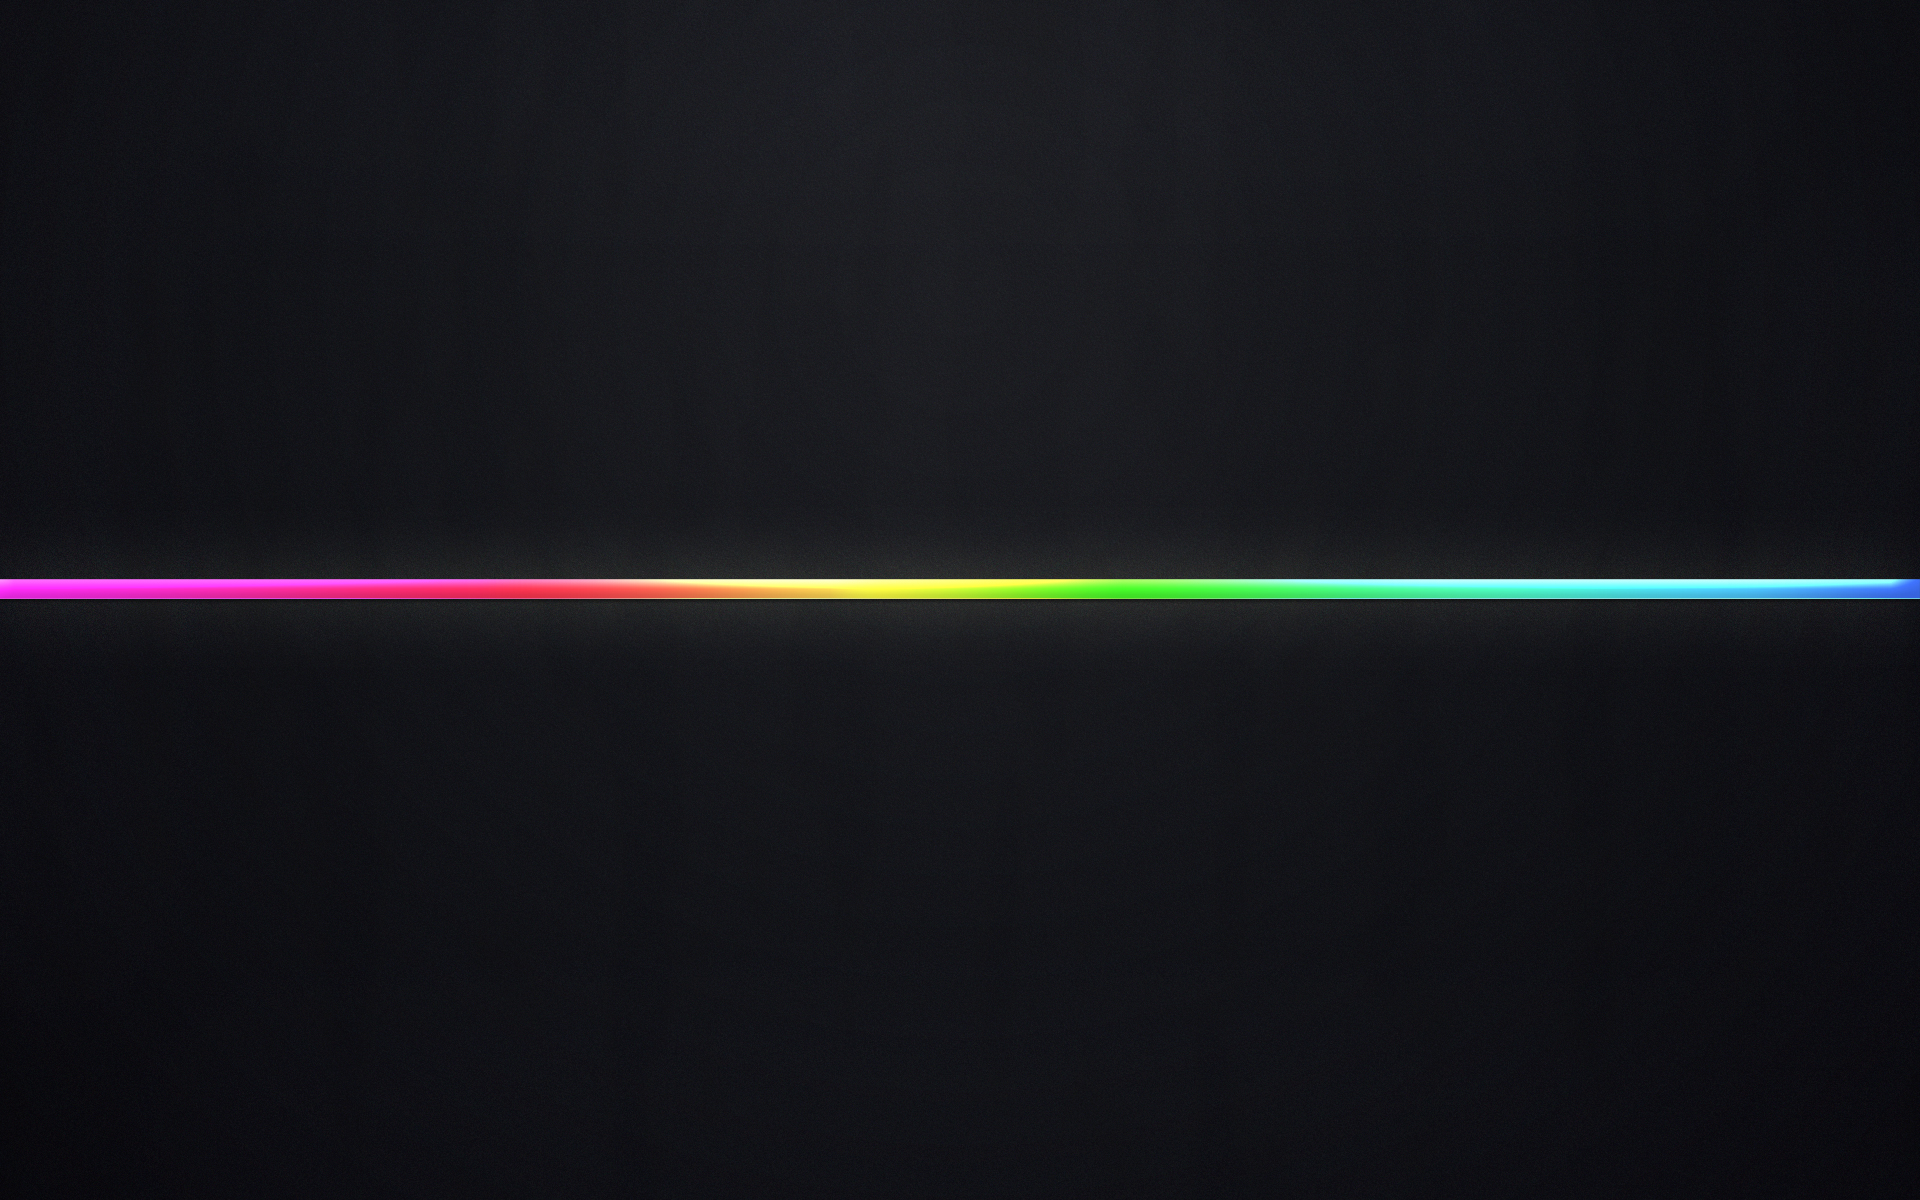 Neon lines Wallpaper Wallpapers   High resolution Desktop 1920x1200